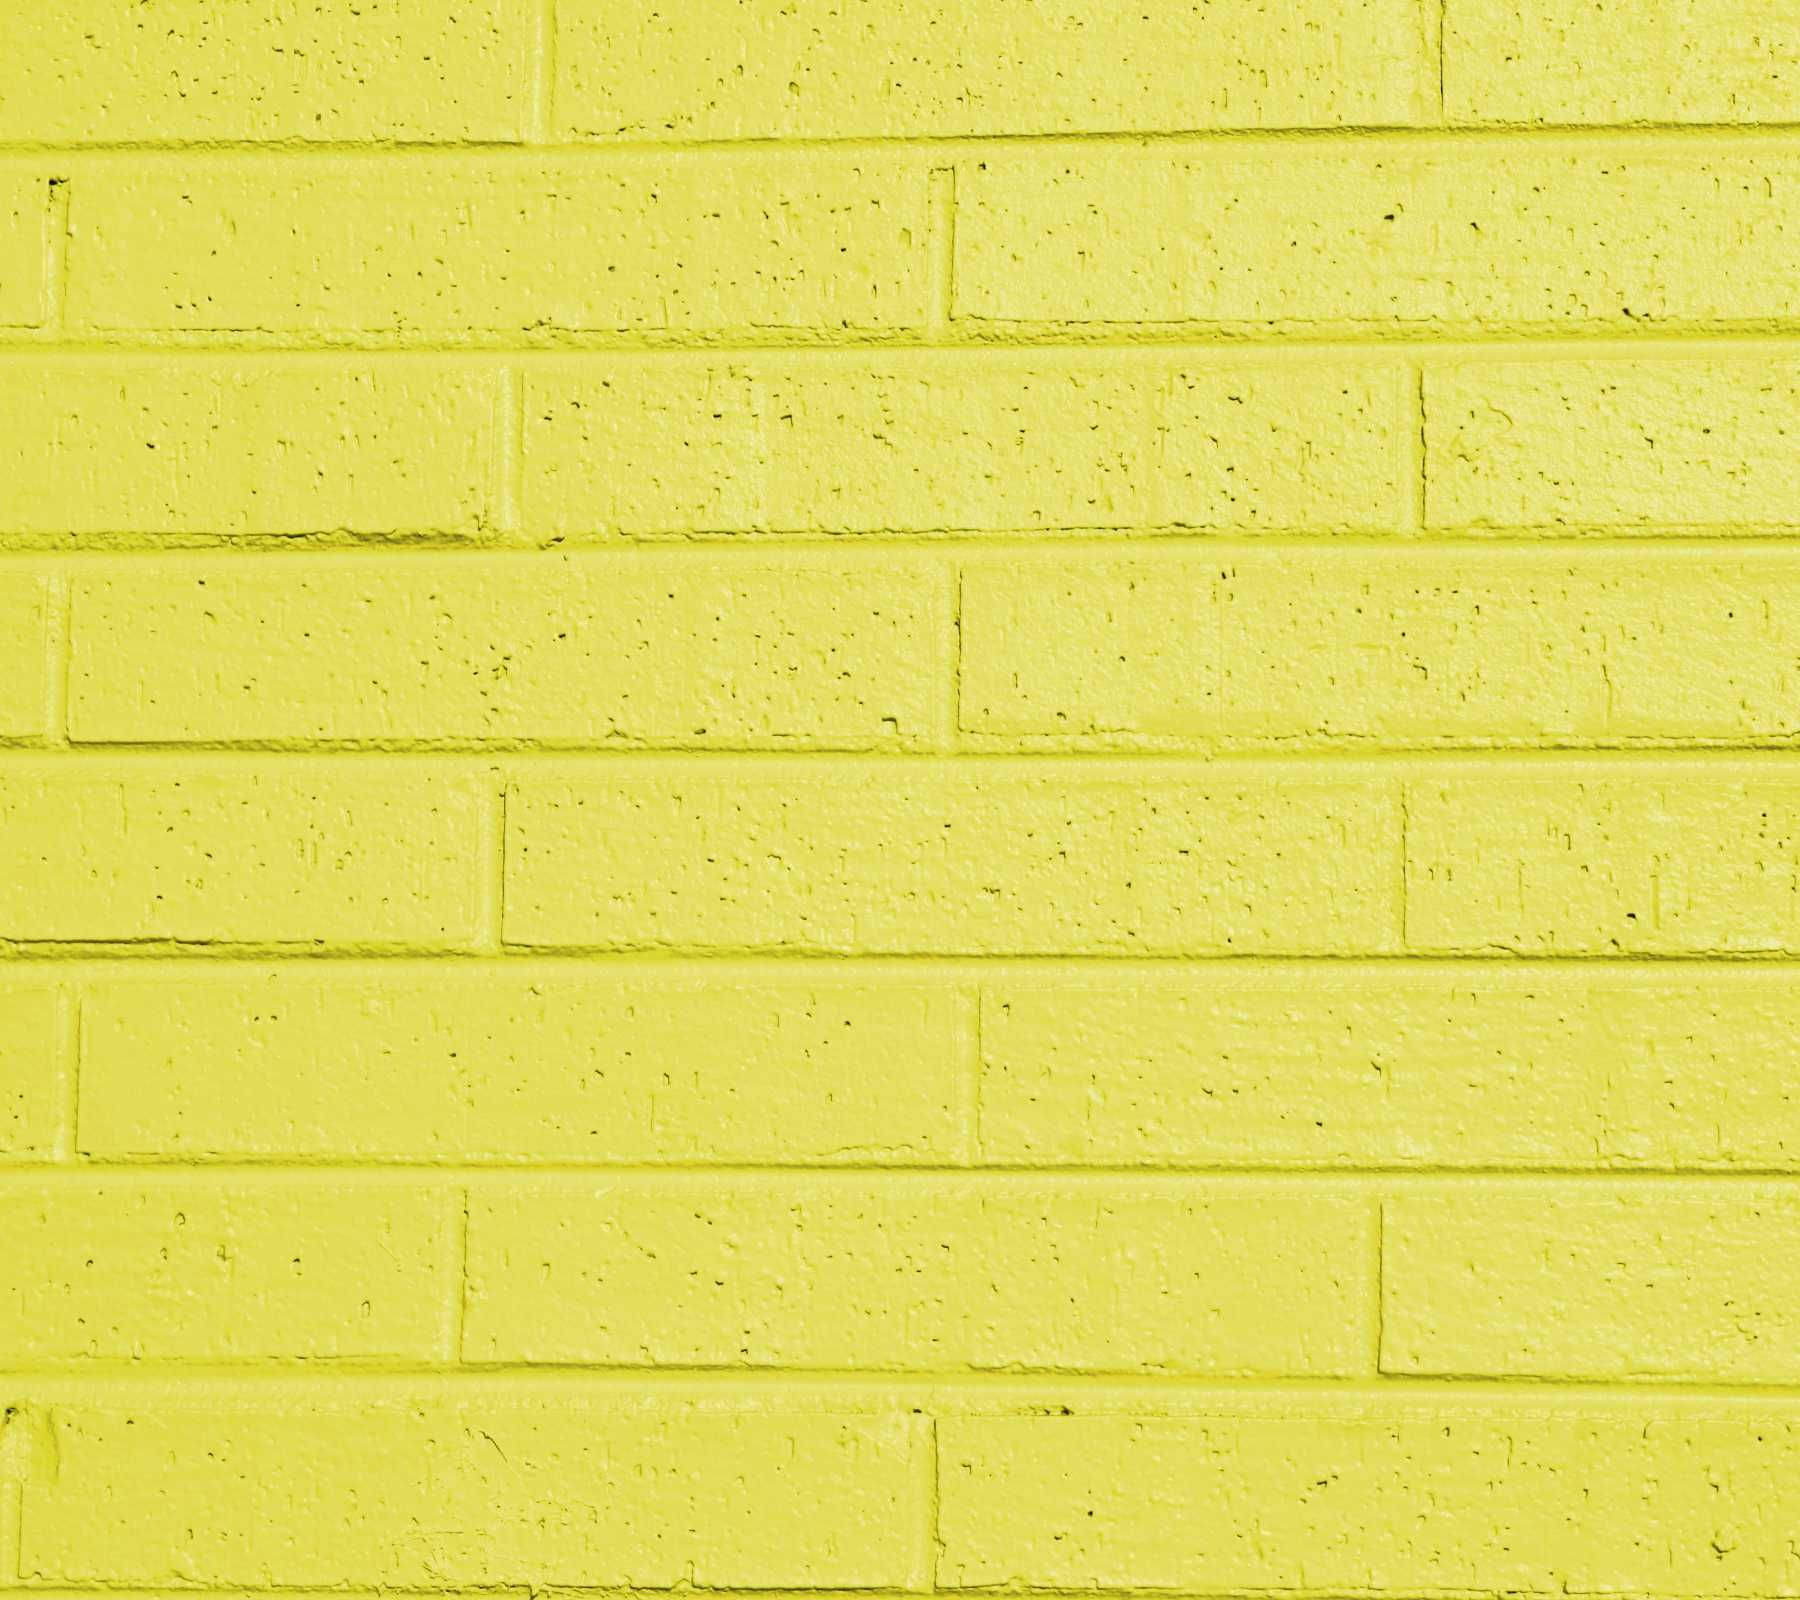 yellow_painted_brick_wall | Yellow | Pinterest | Painted brick walls